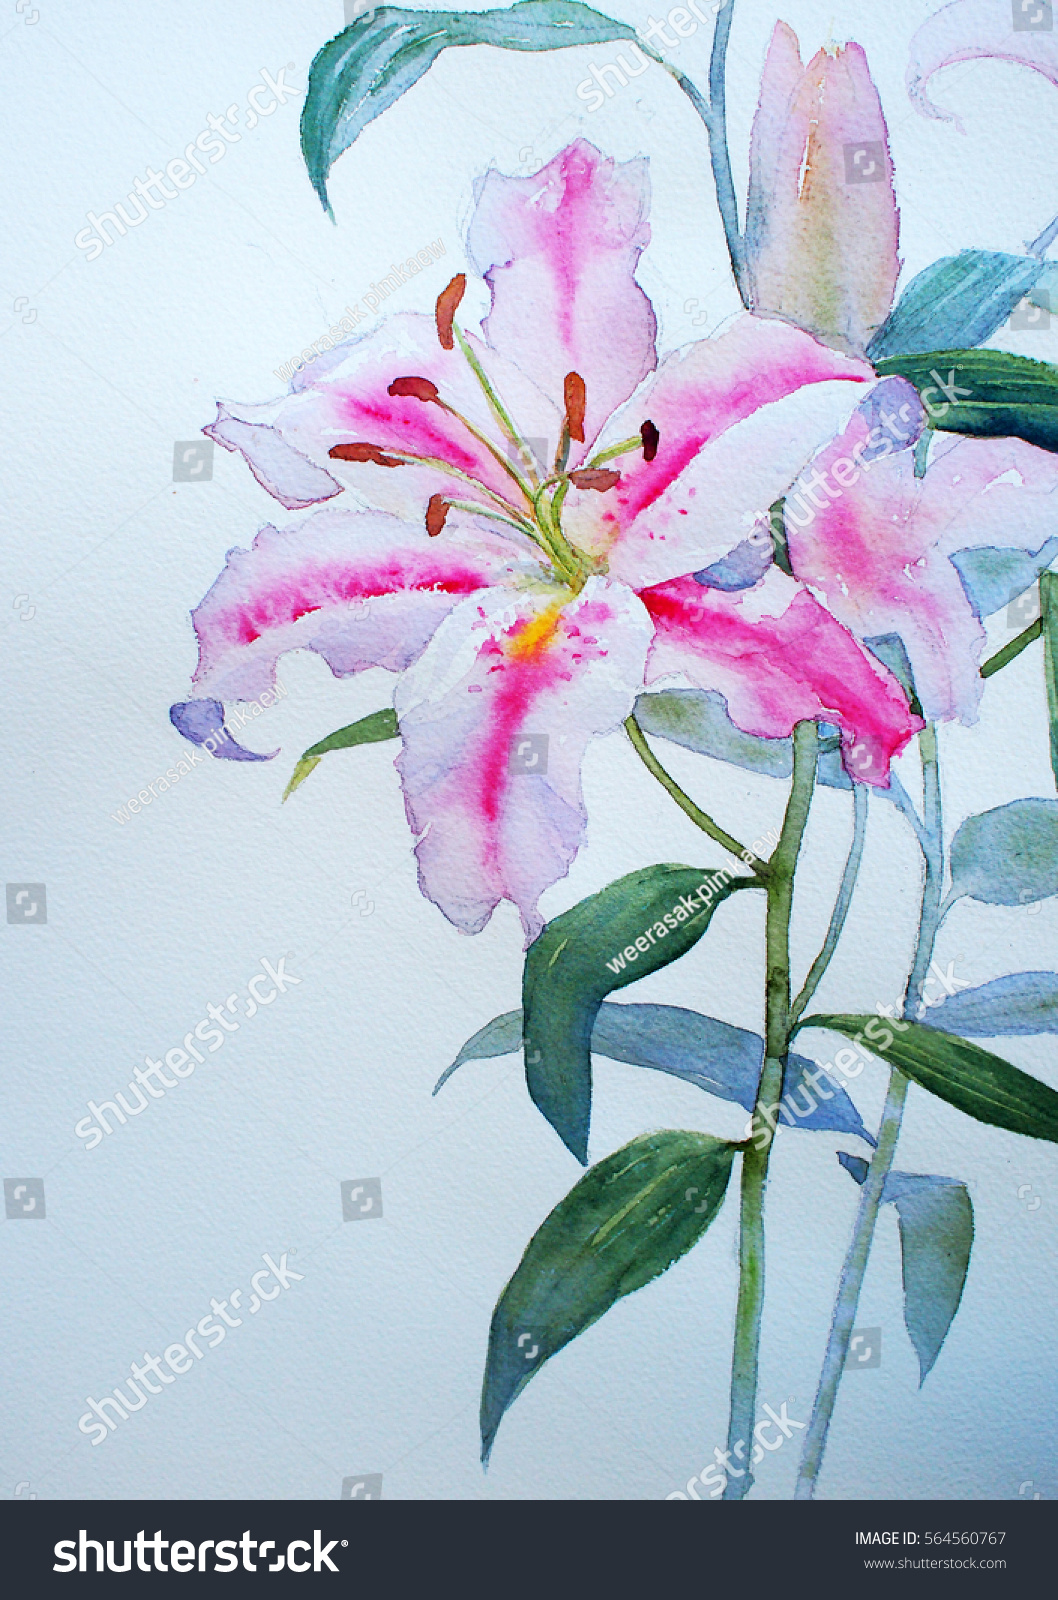 Lily Flowers Backgrounds Textures Watercolor Stock Illustration